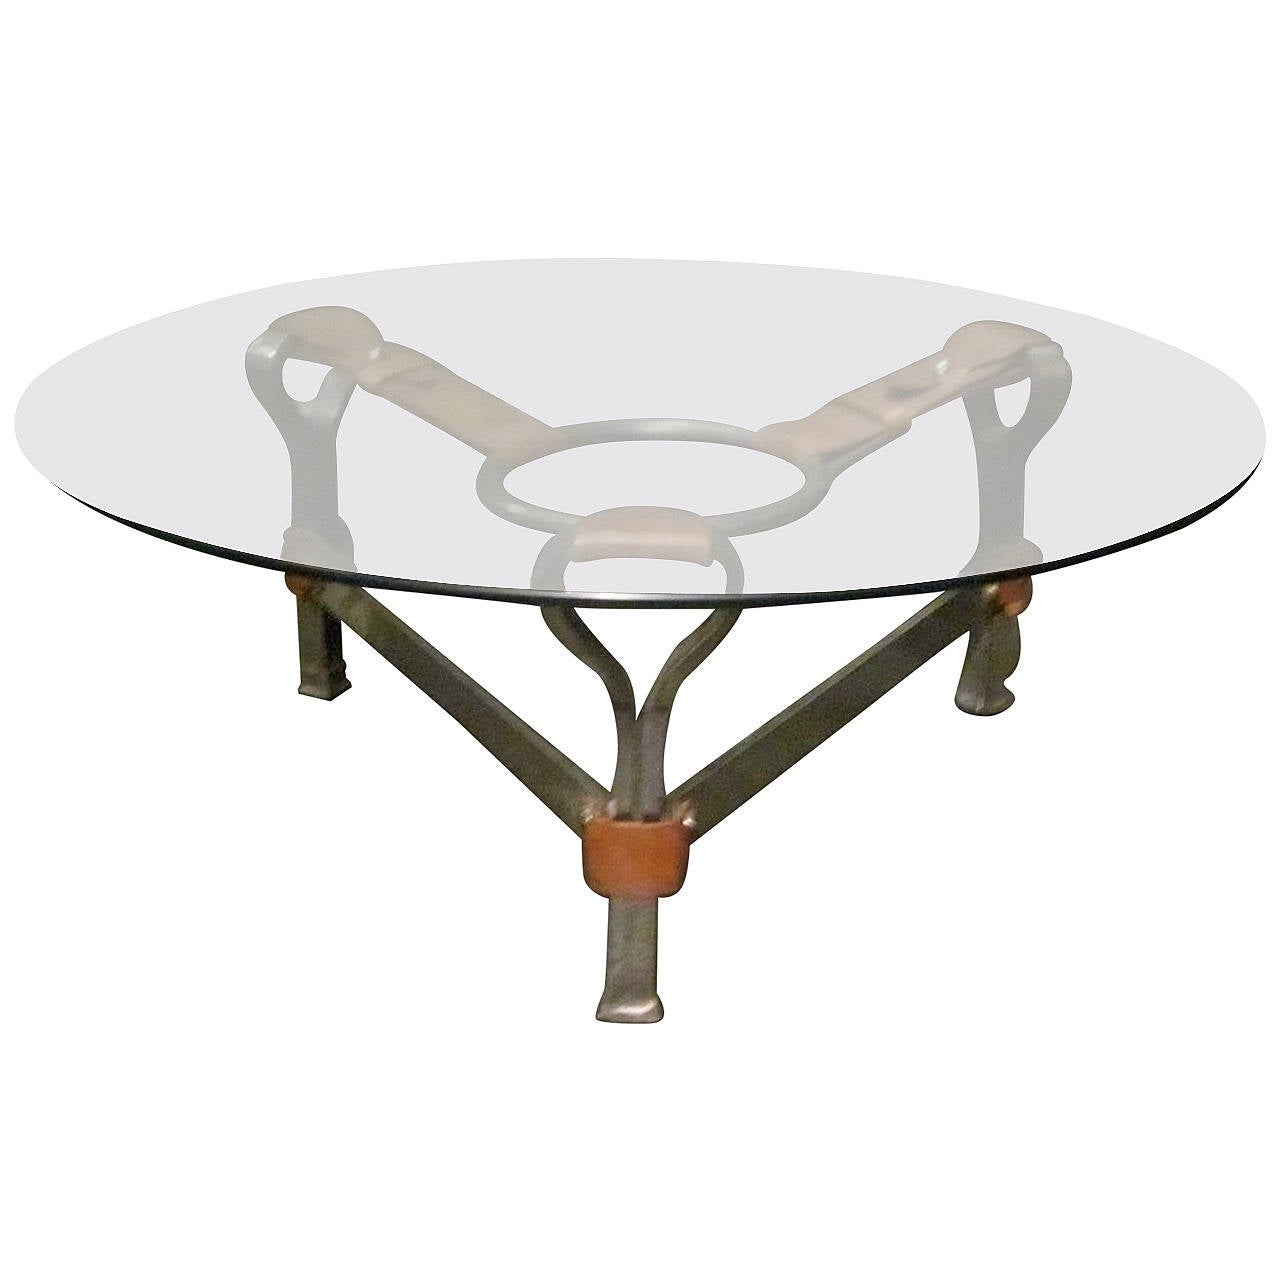 1970s leather and steel base round glass top coffee table belgium at 1stdibs Glass coffee table base